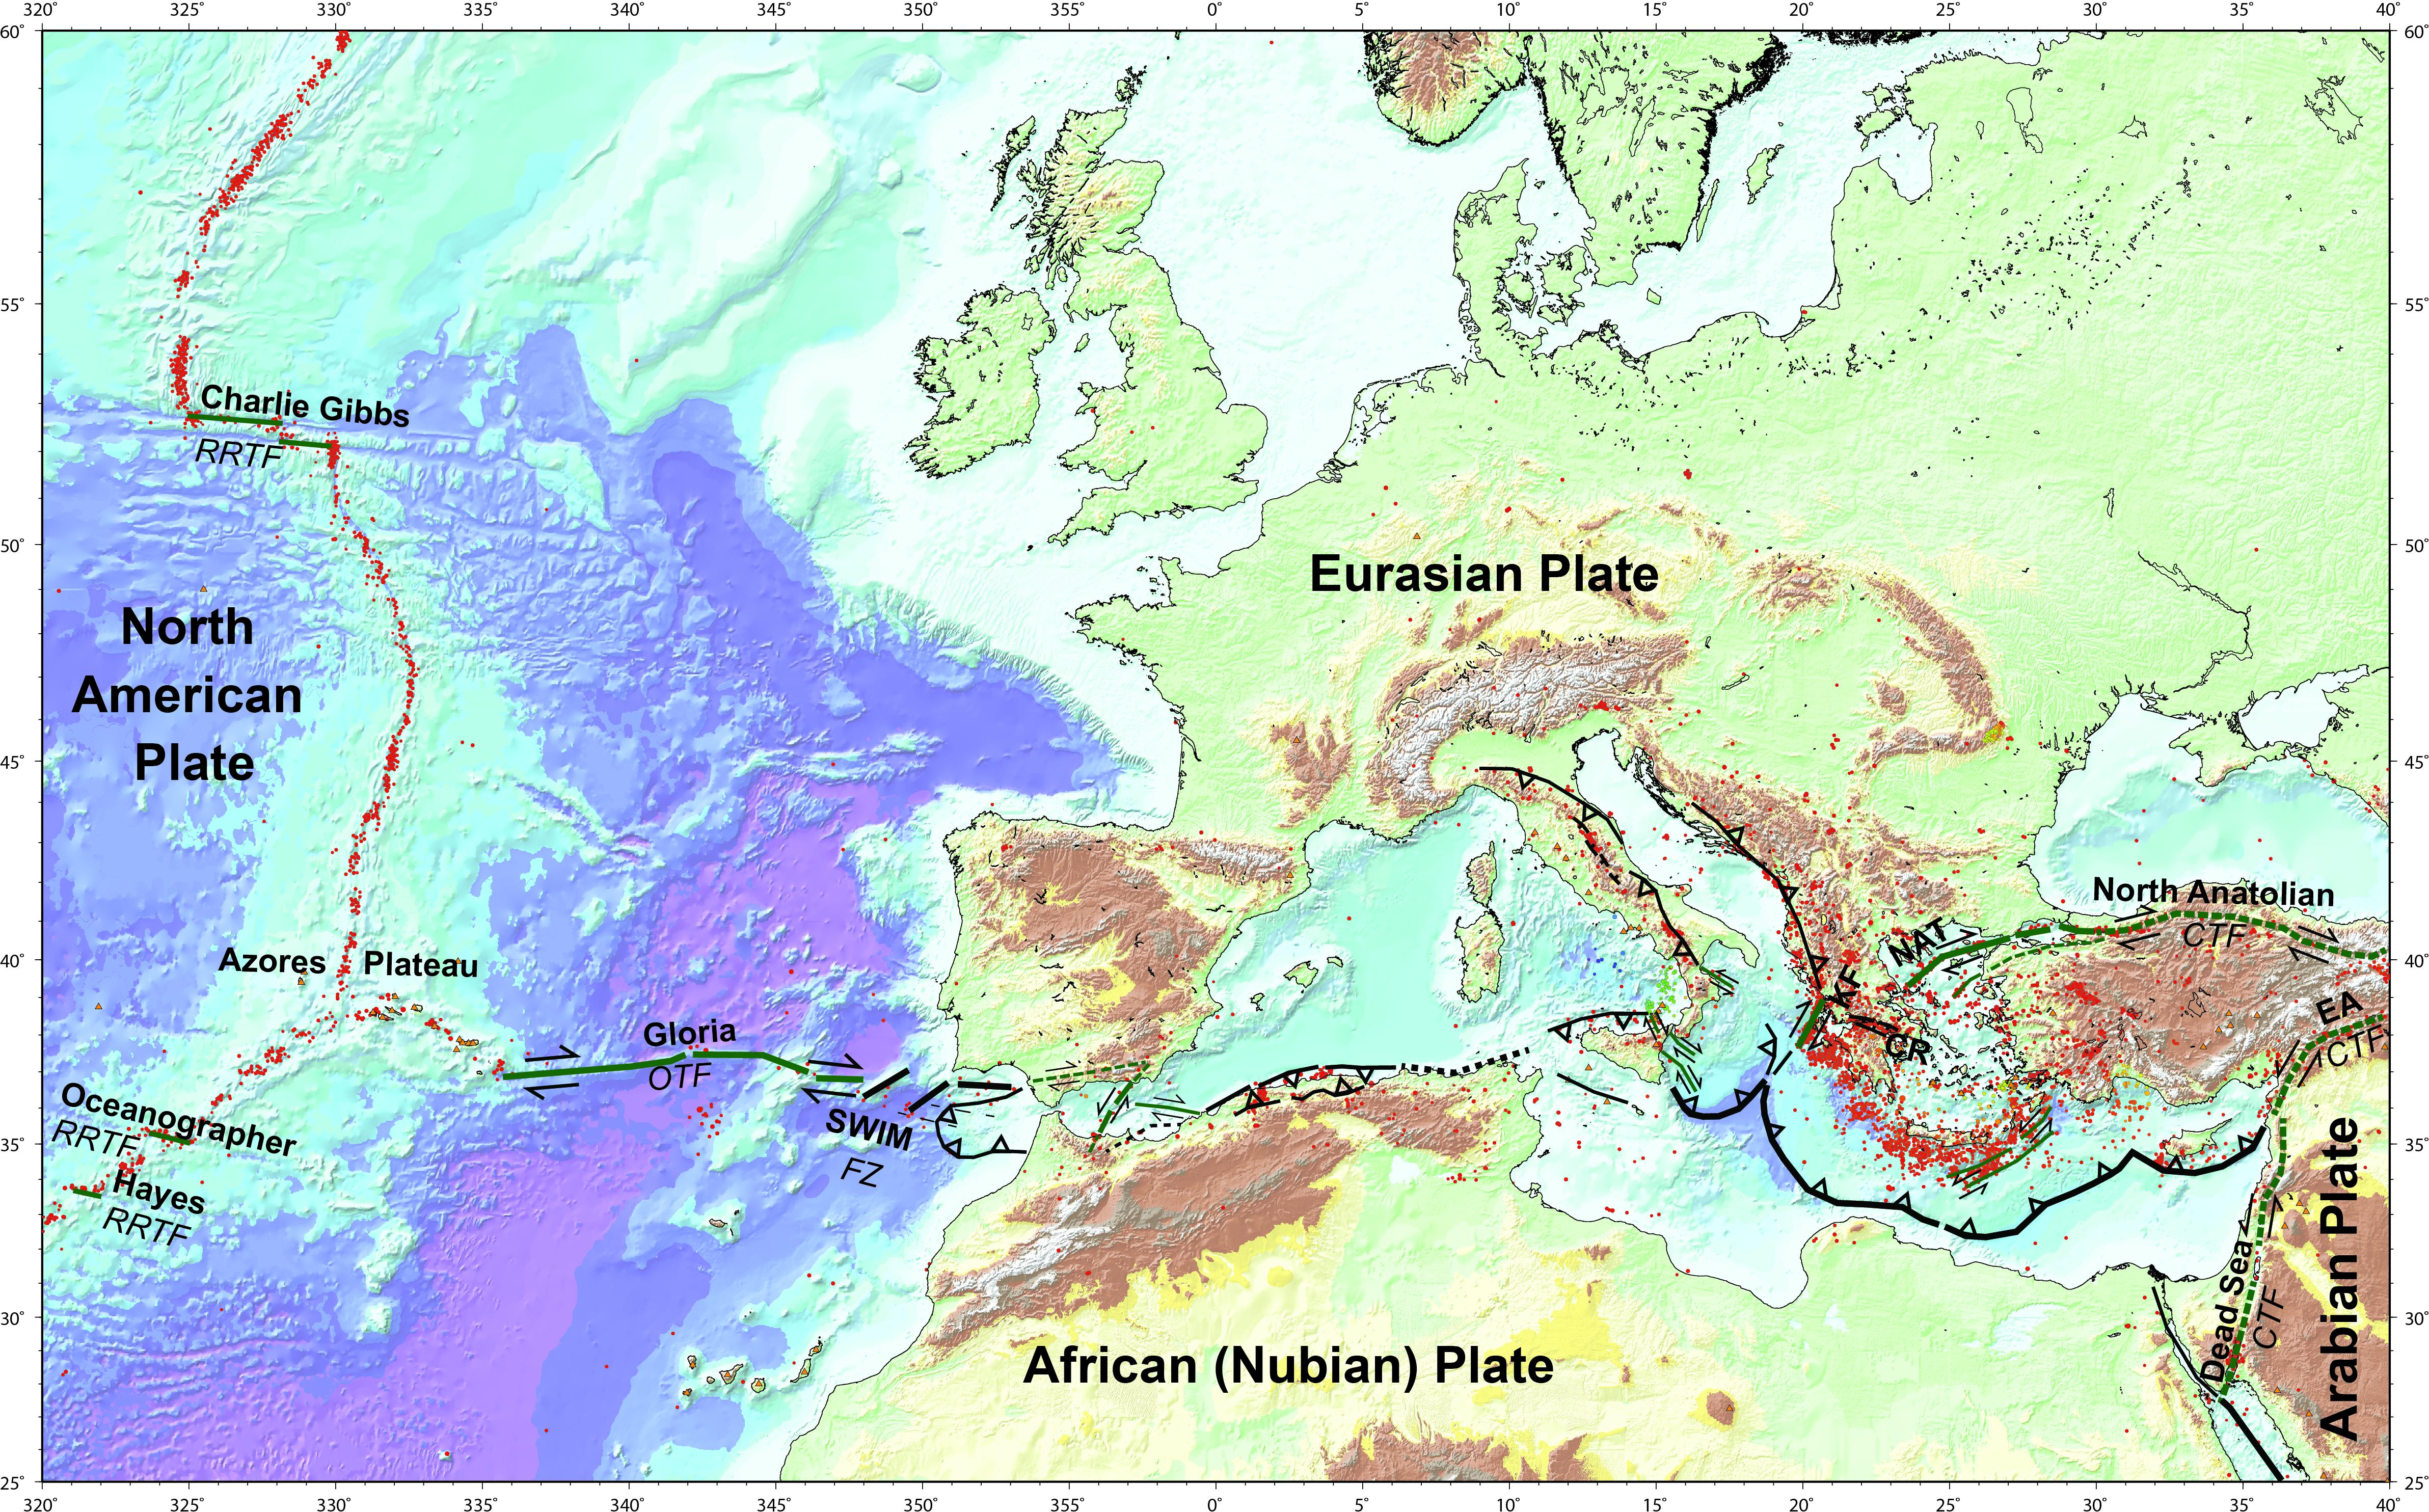 Transform Faults and Fracture Zones